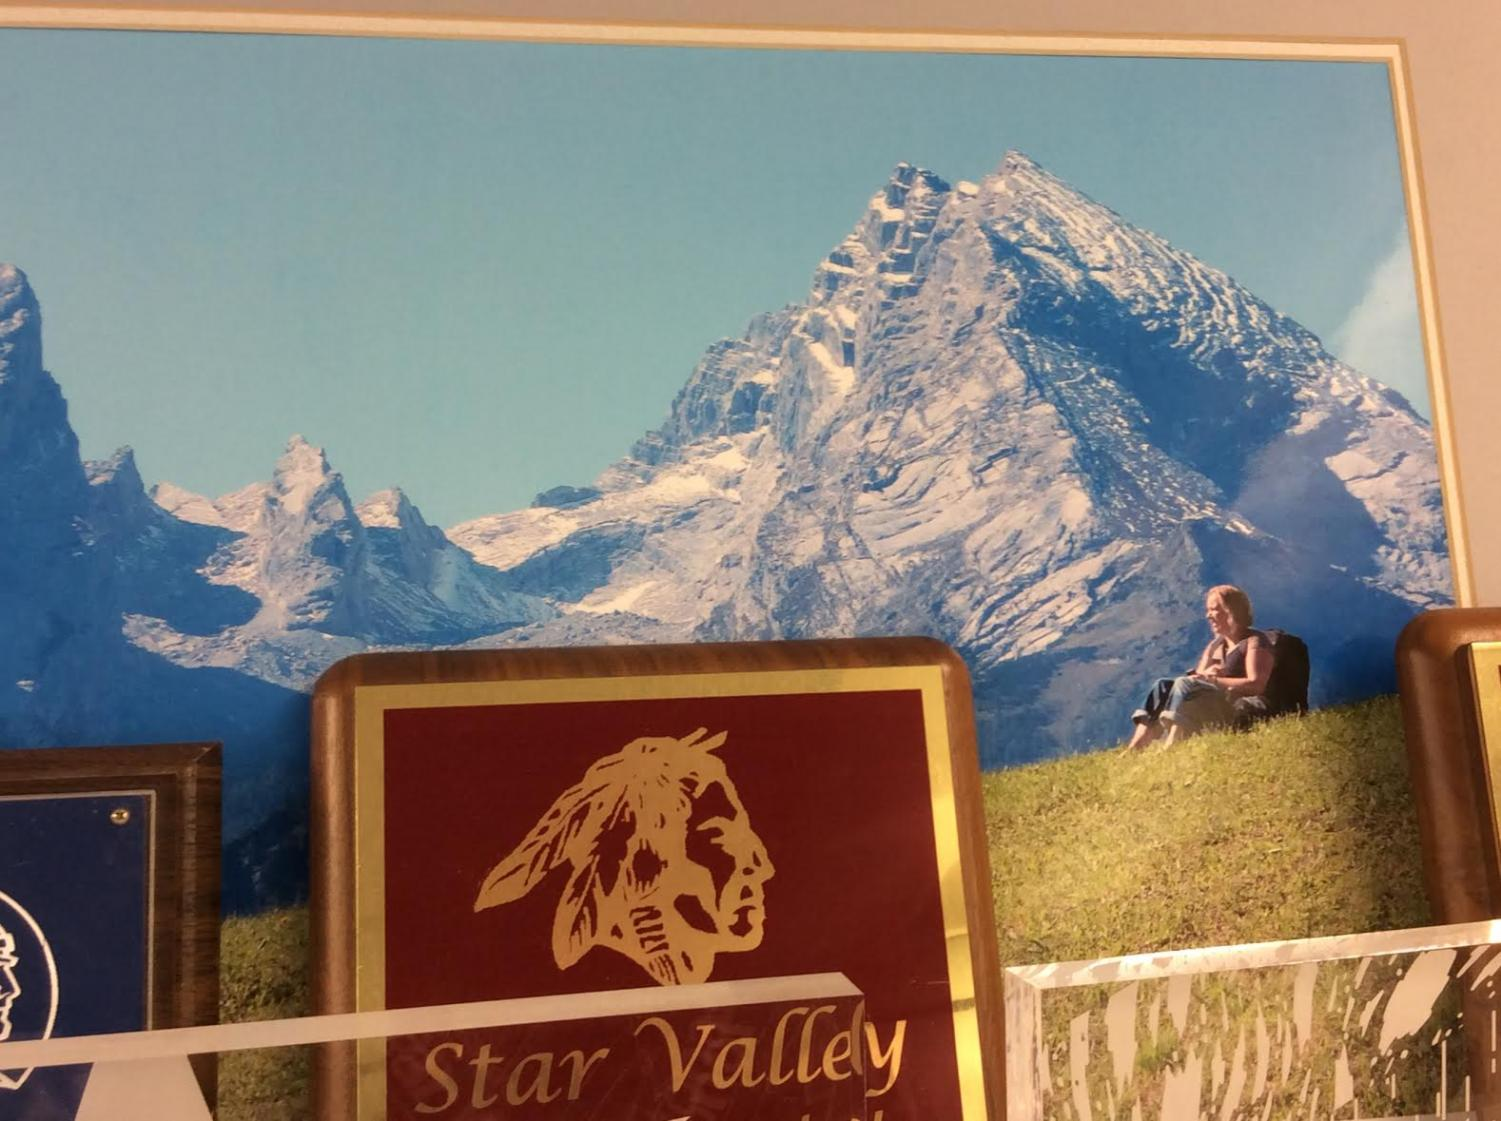 HIGH: Mr. Draney's wife chills in the shadows of the Alps in this photo that hangs in his room.